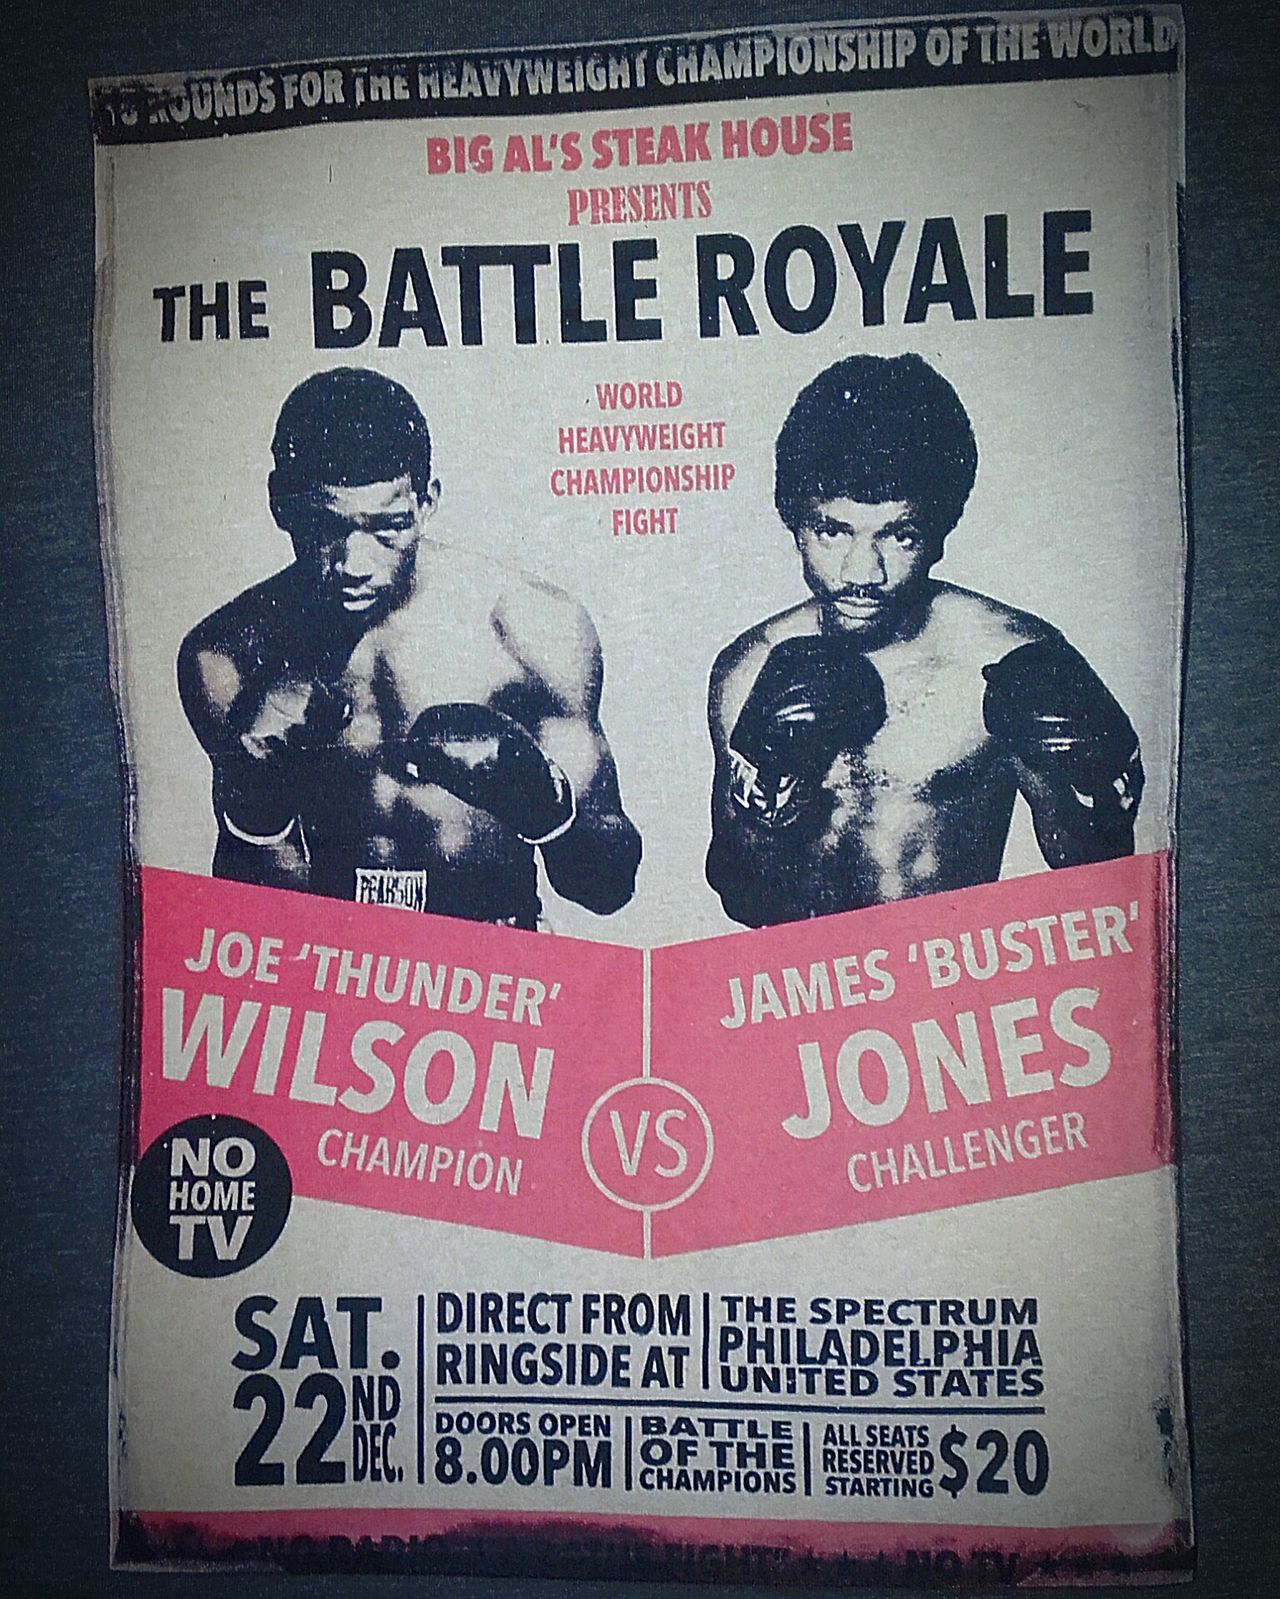 Poster Posters Boxing Posterporn Joe 'thunder' Wilson James 'buster' Jones Champion Vs Challenger Champ V Challenger Champ Vs Challenger The Battle Royale World Heavyweight Championship Big Al's Steakhouse Big Al's Steak House The Battle Of The Champions Color Posters Wilson Vs Jones Oldposter Poster Collection Oldposters Postercollection Poster Wall Wall Posters Old Poster Boxing Posters Old Posters